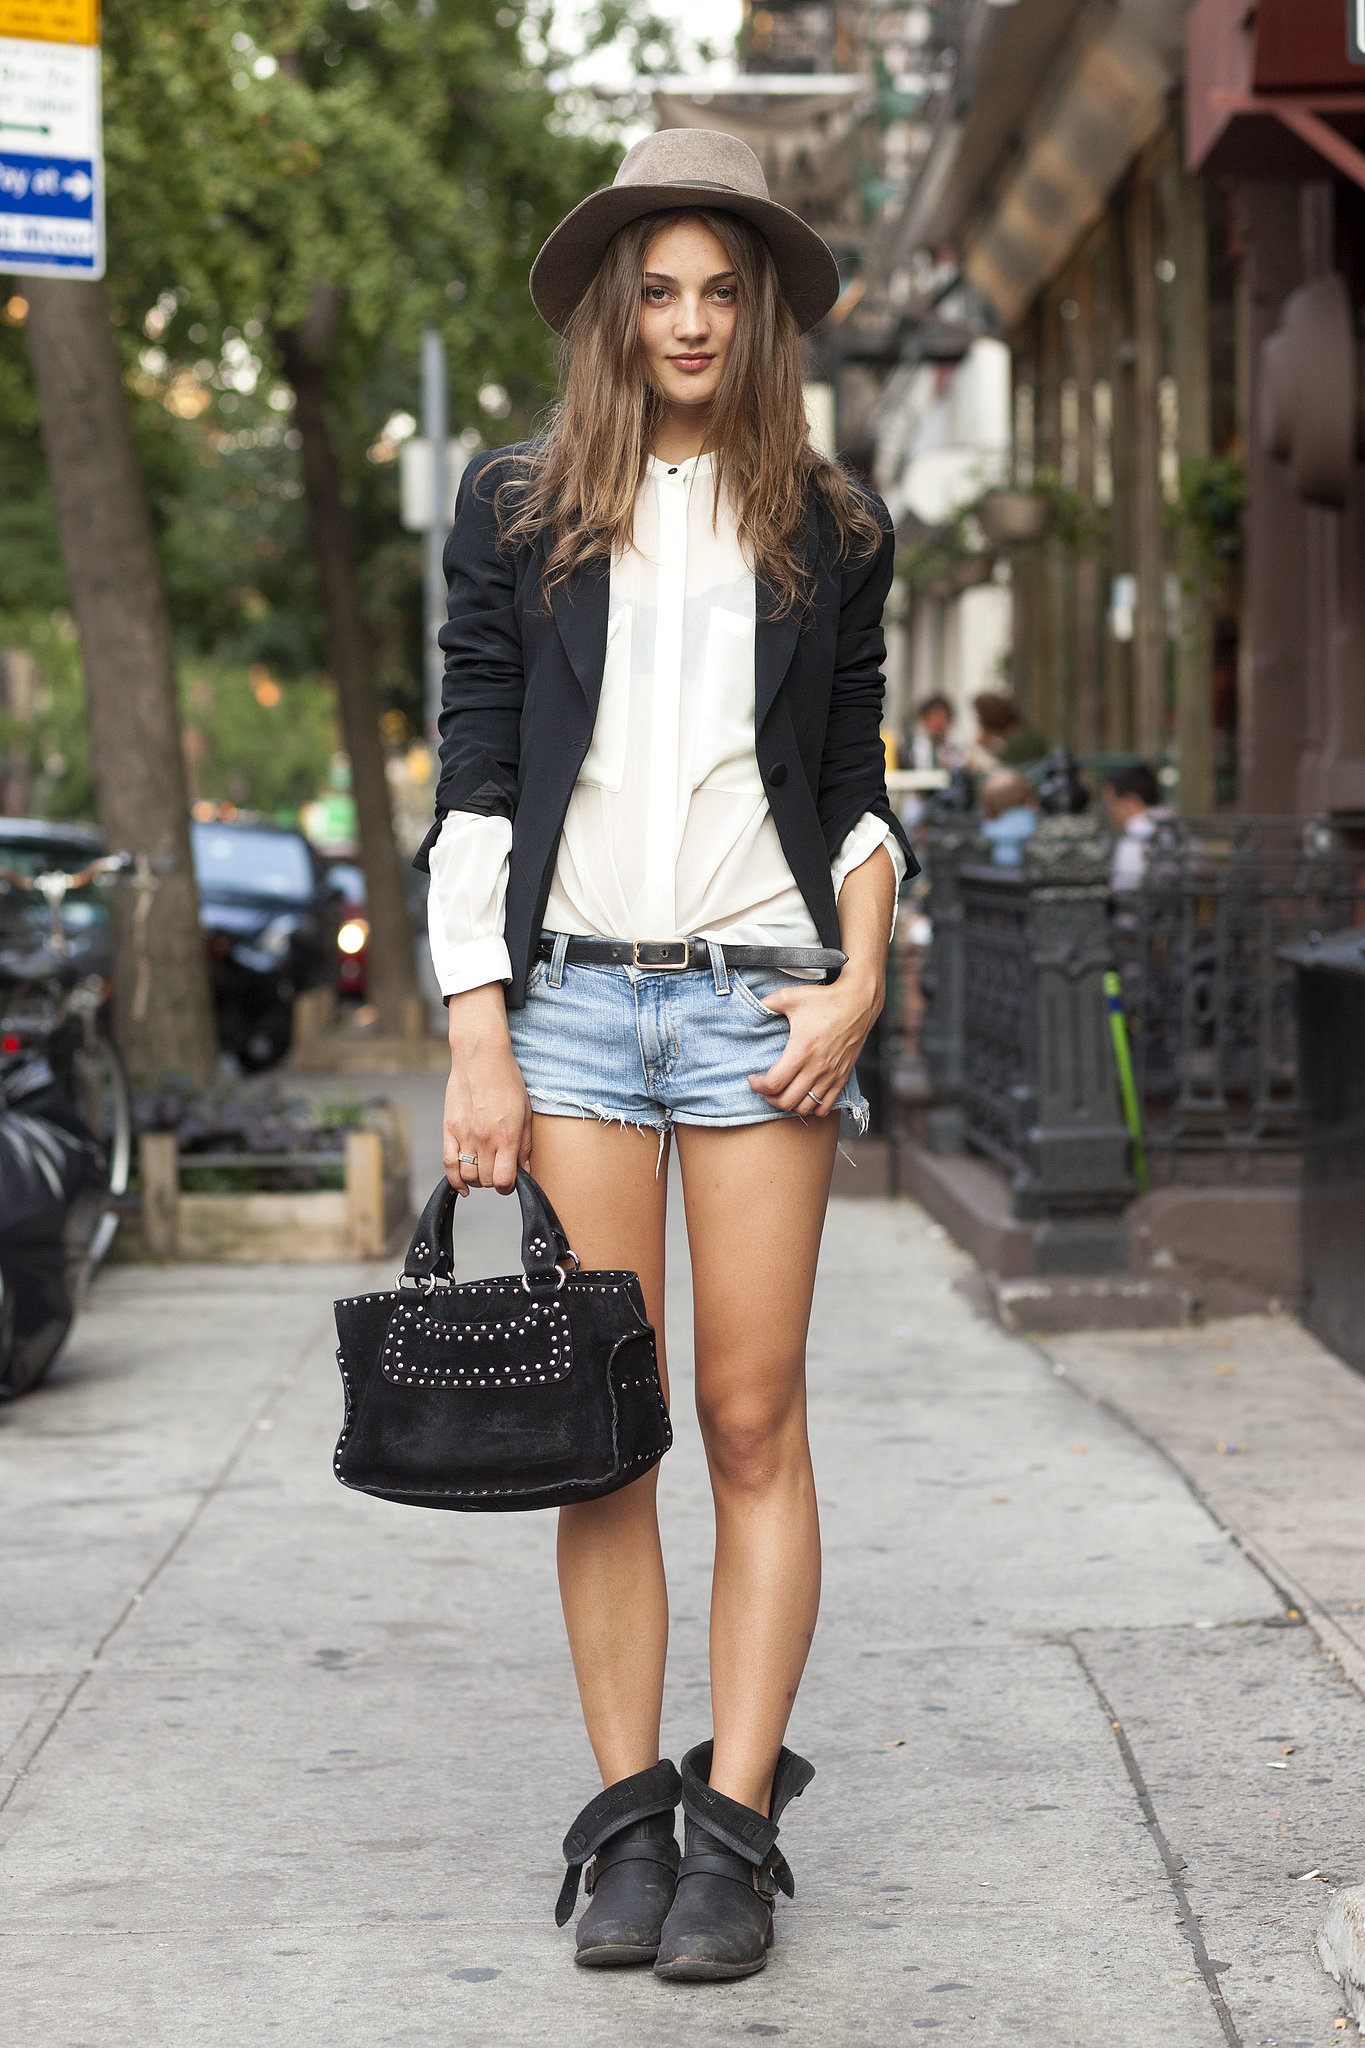 Give your cutoffs a Fall makeover with a blazer and autumnal accompaniments, like a hat and biker boots. Source: Le 21ème | Adam Katz Sinding